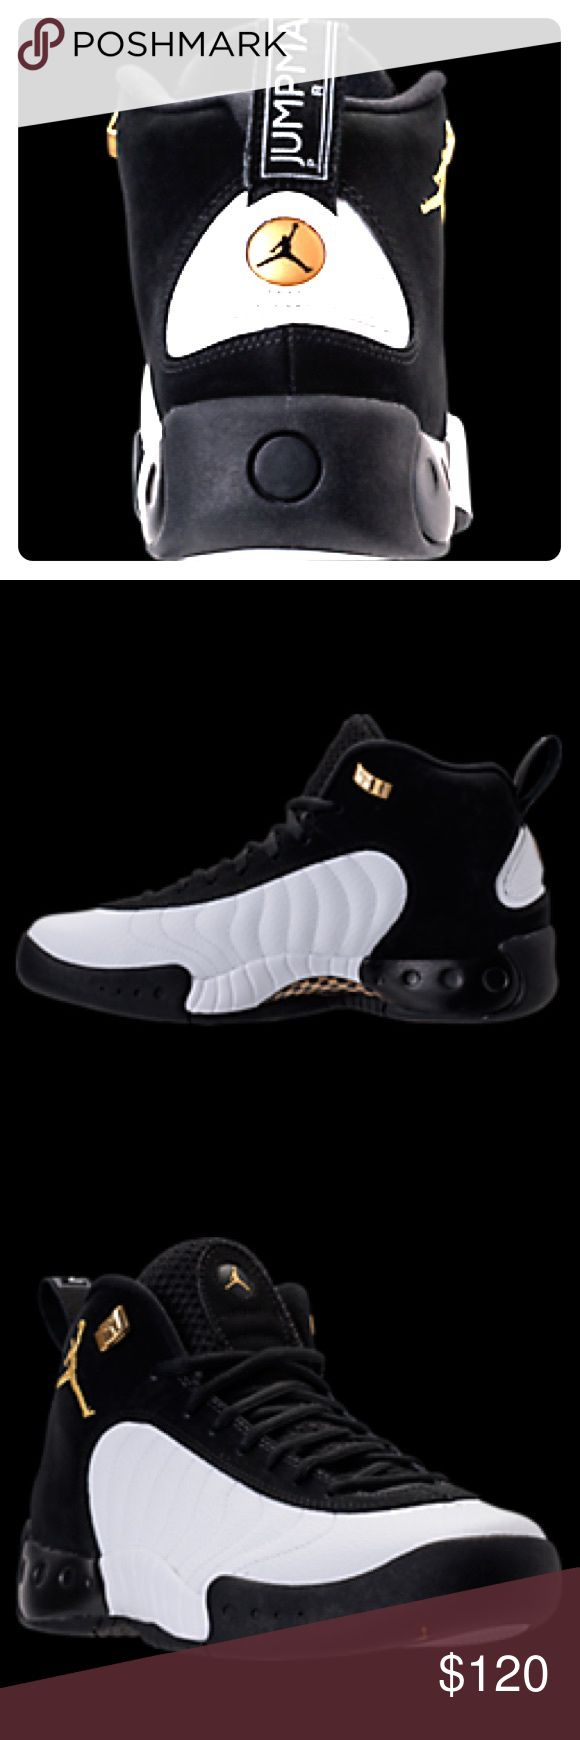 Jordan Jumpman Pro - Men's 9.5 New in box Jordan Jumpman Pro shoes, black and white with gold logo, new in box. Sold out in stores! Nike Shoes Athletic Shoes